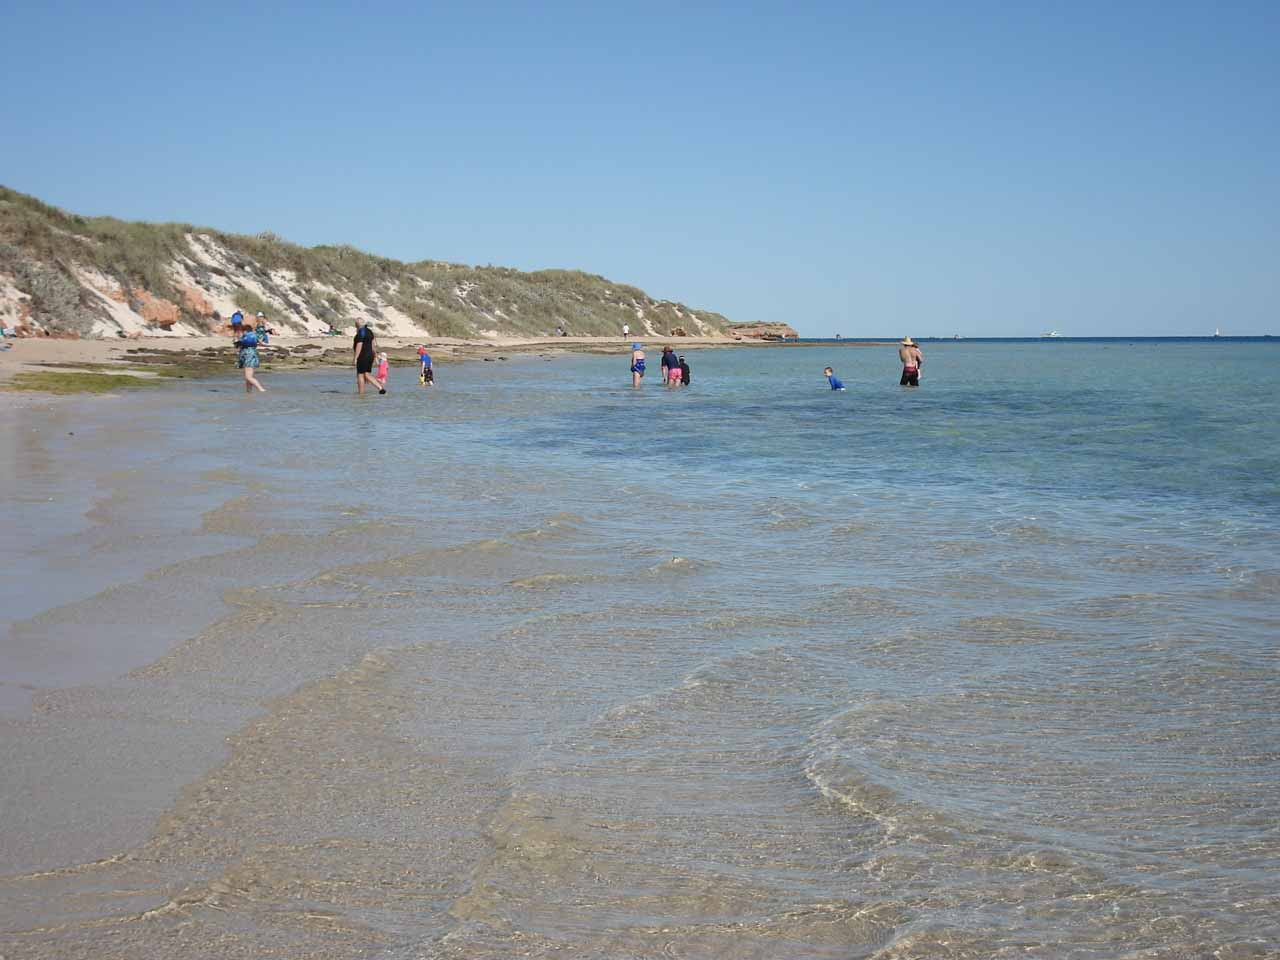 People playing in the shallow waters of the Ningaloo Reef